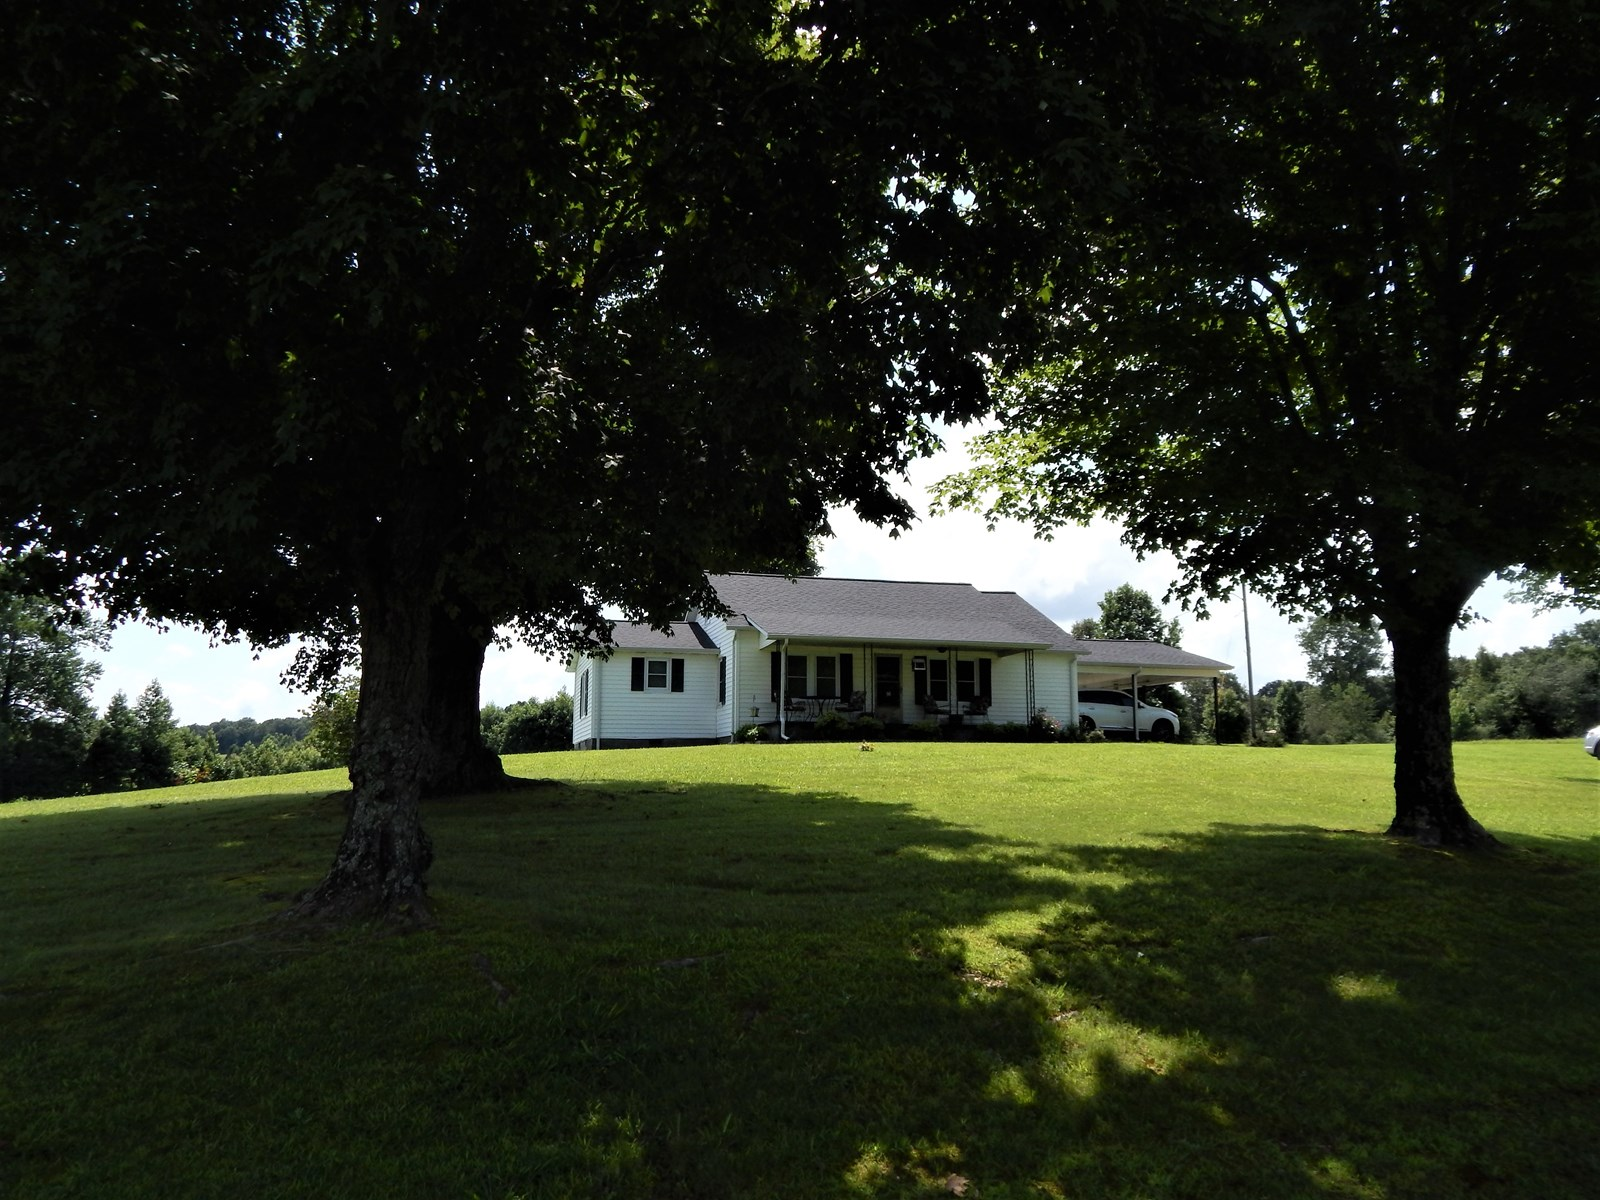 COUNTRY HOME IN TENNESSEE 3 BED, 2 BATH ON 1 ACRE!